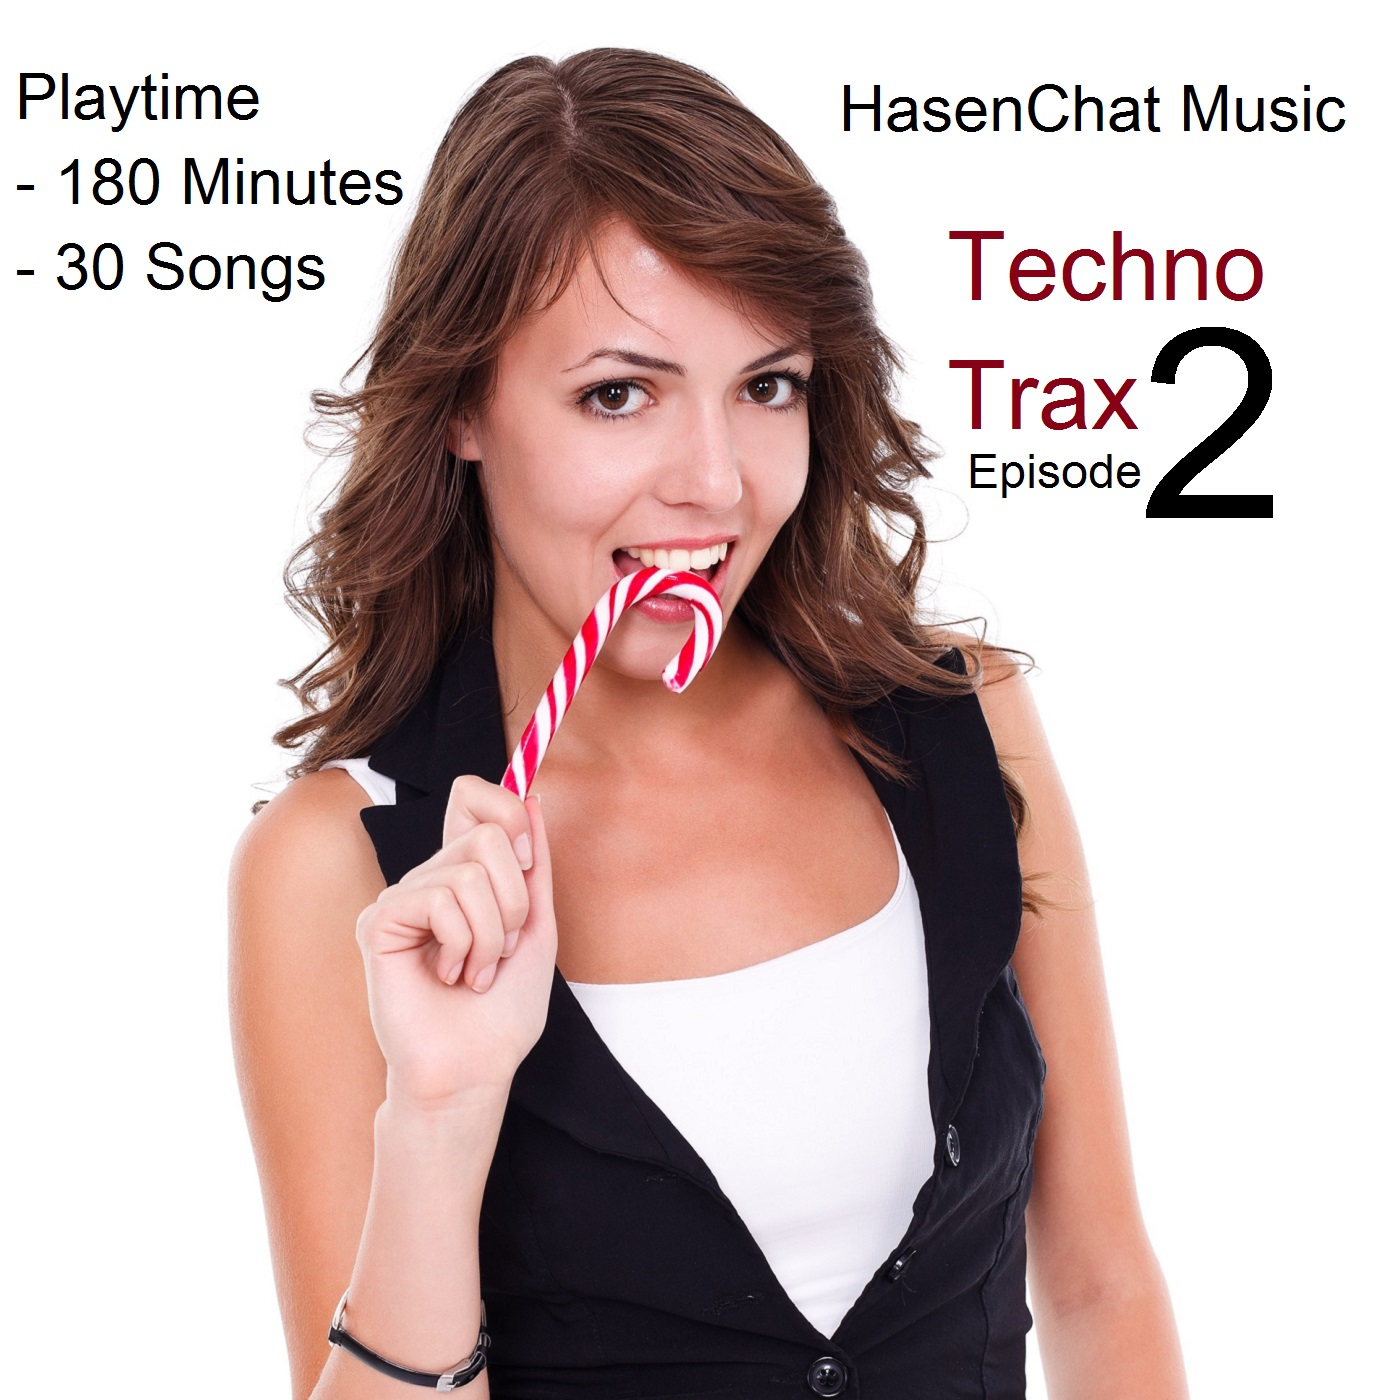 HasenChat Music - Techno Trax - Episode 2